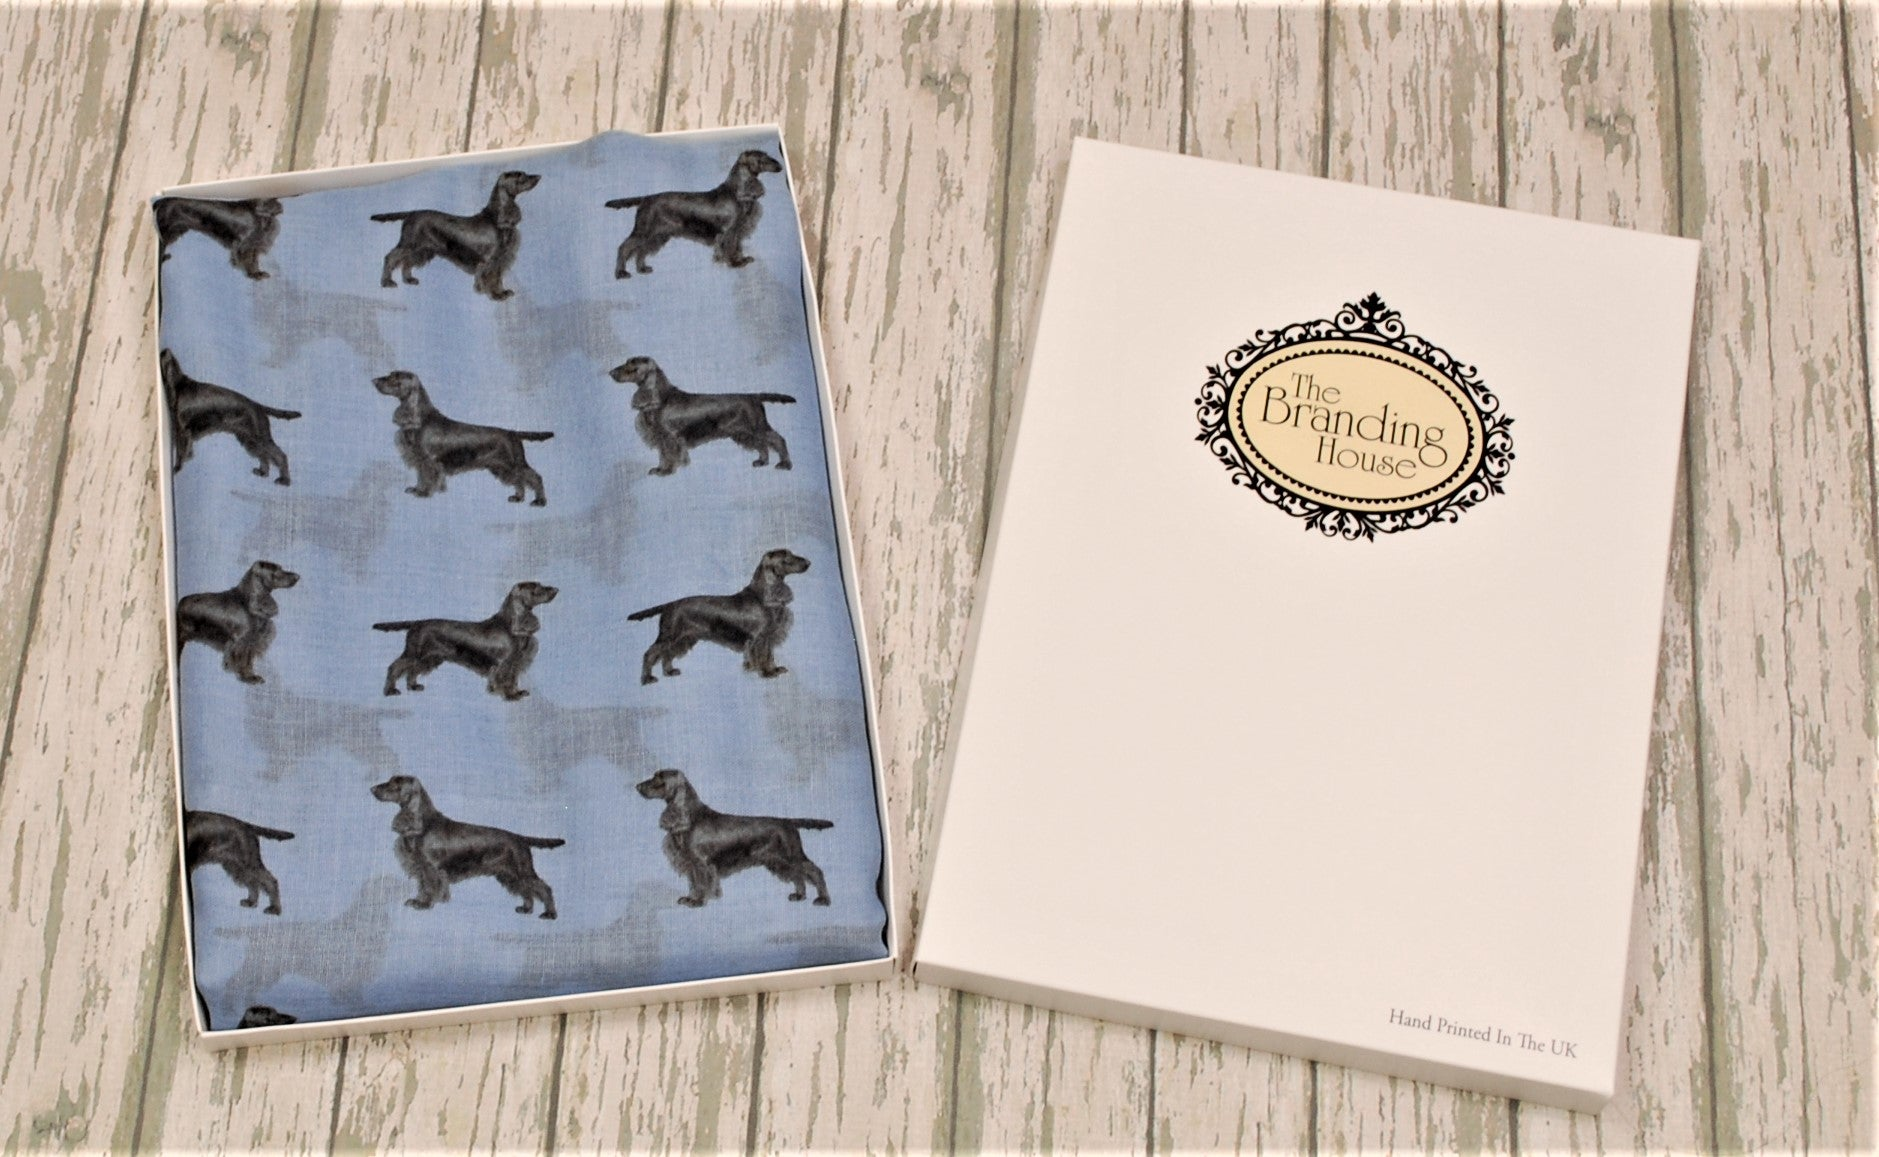 Field Spaniel scarf hand printed in the UK